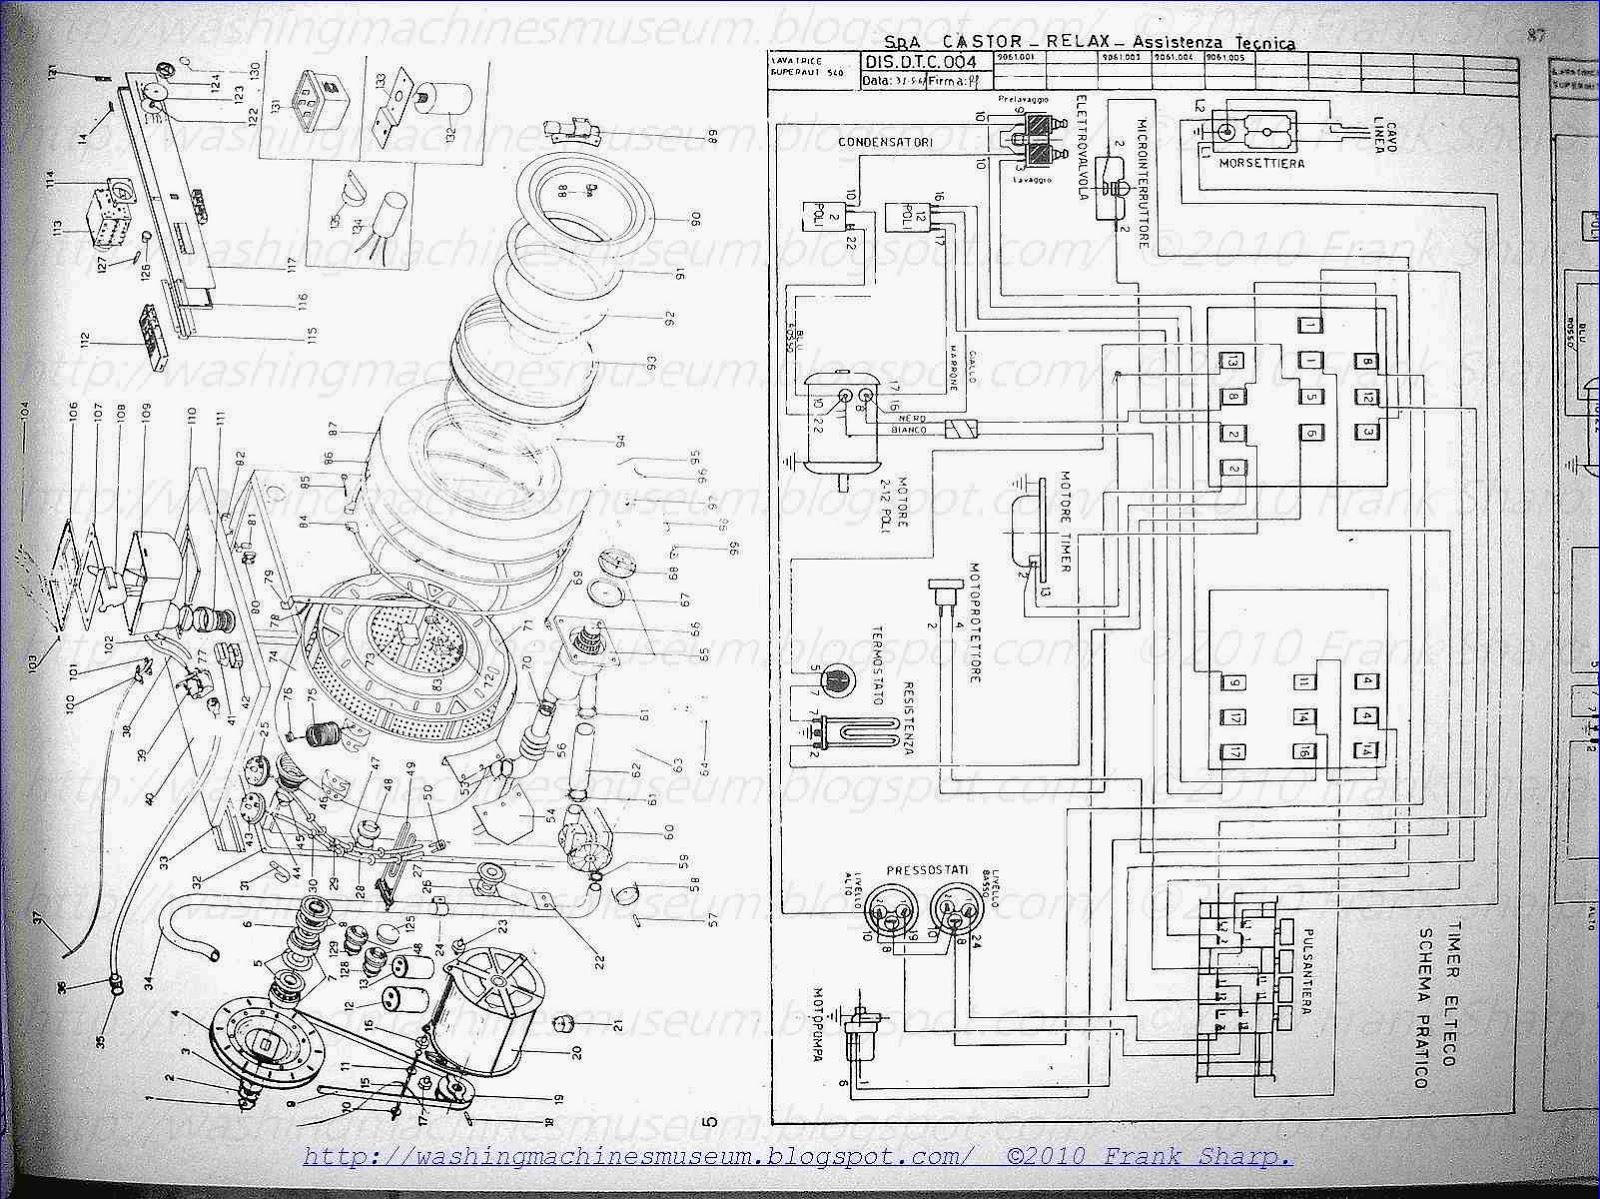 washer rama museum castor s a 540 schematic diagram timer mallory